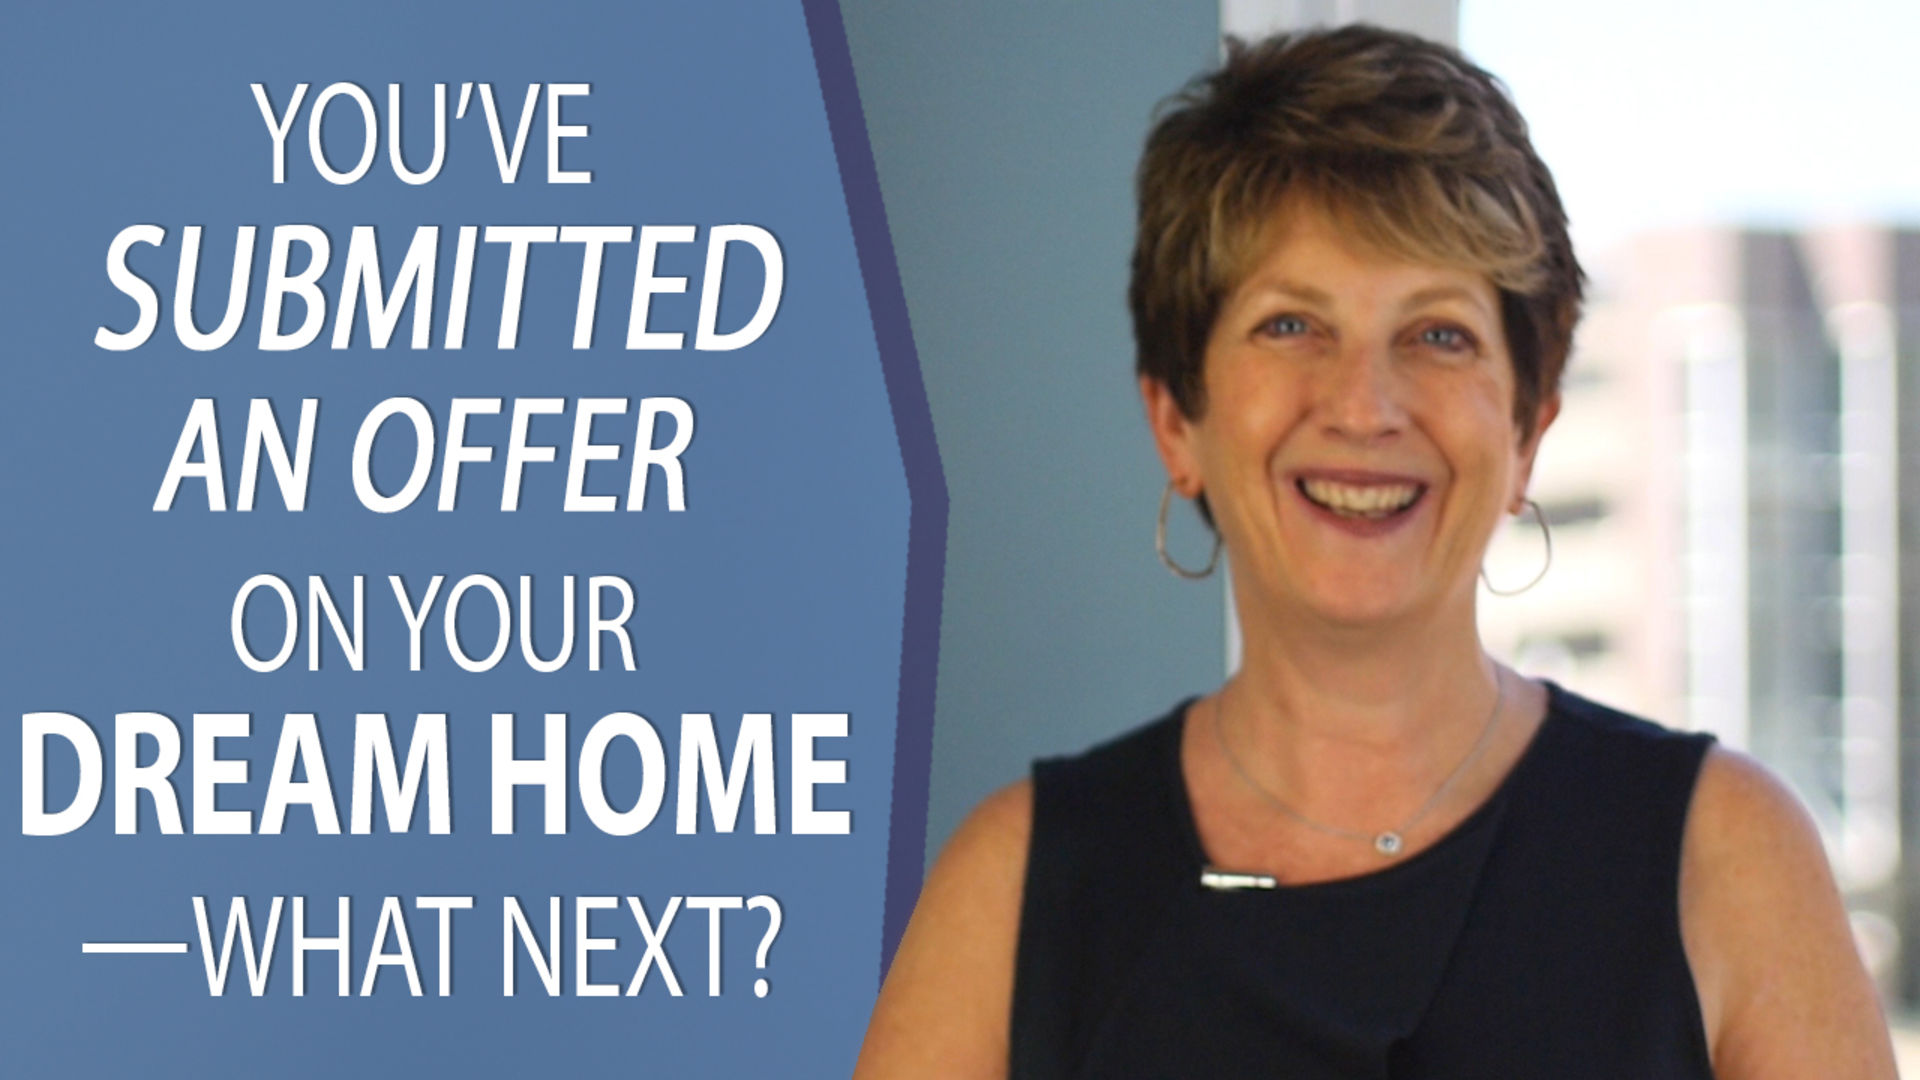 What Happens After You've Submitted an Offer on a Home?